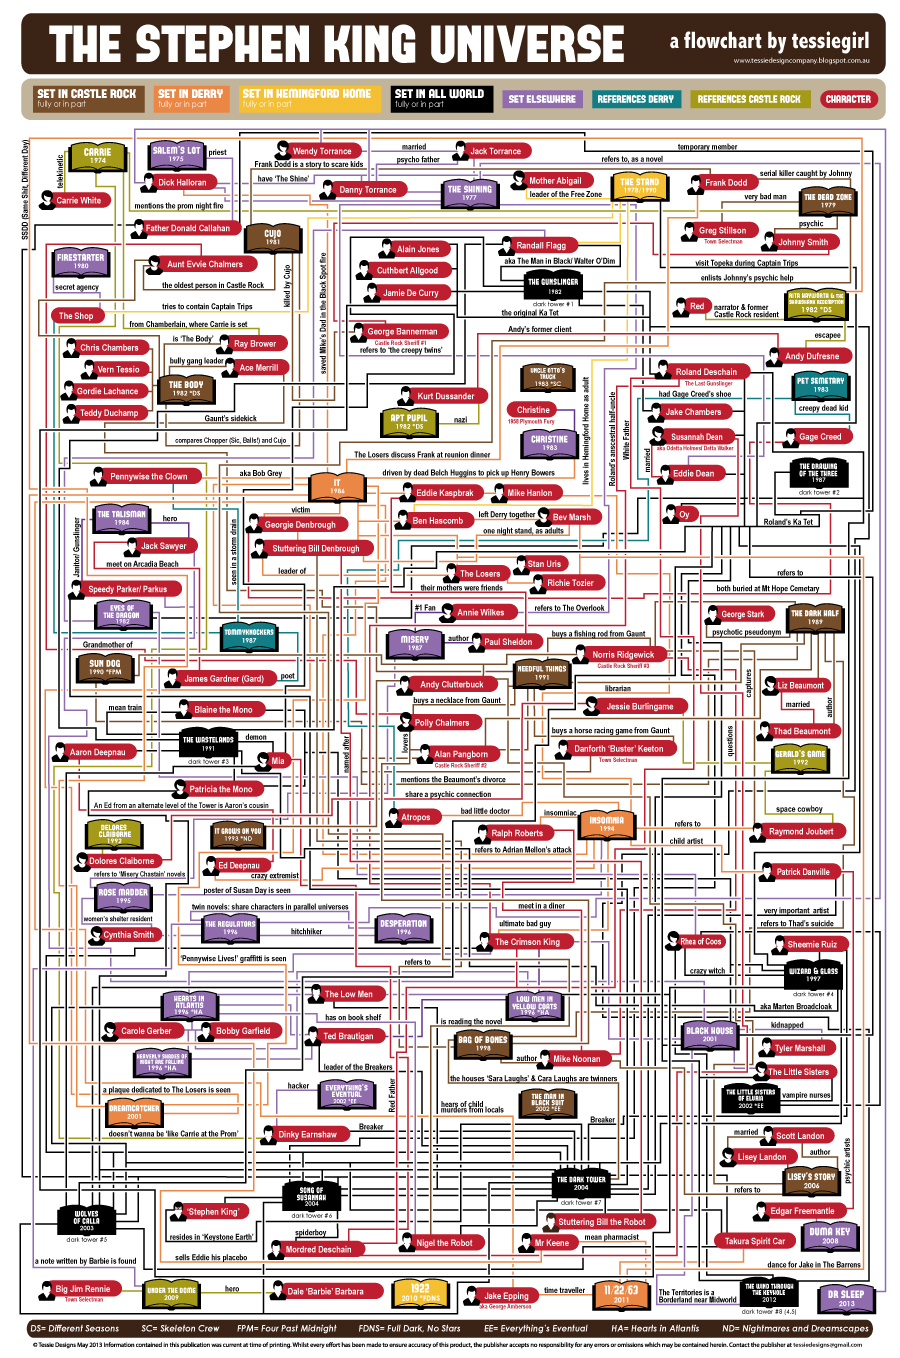 The Stephen King Universe infographic